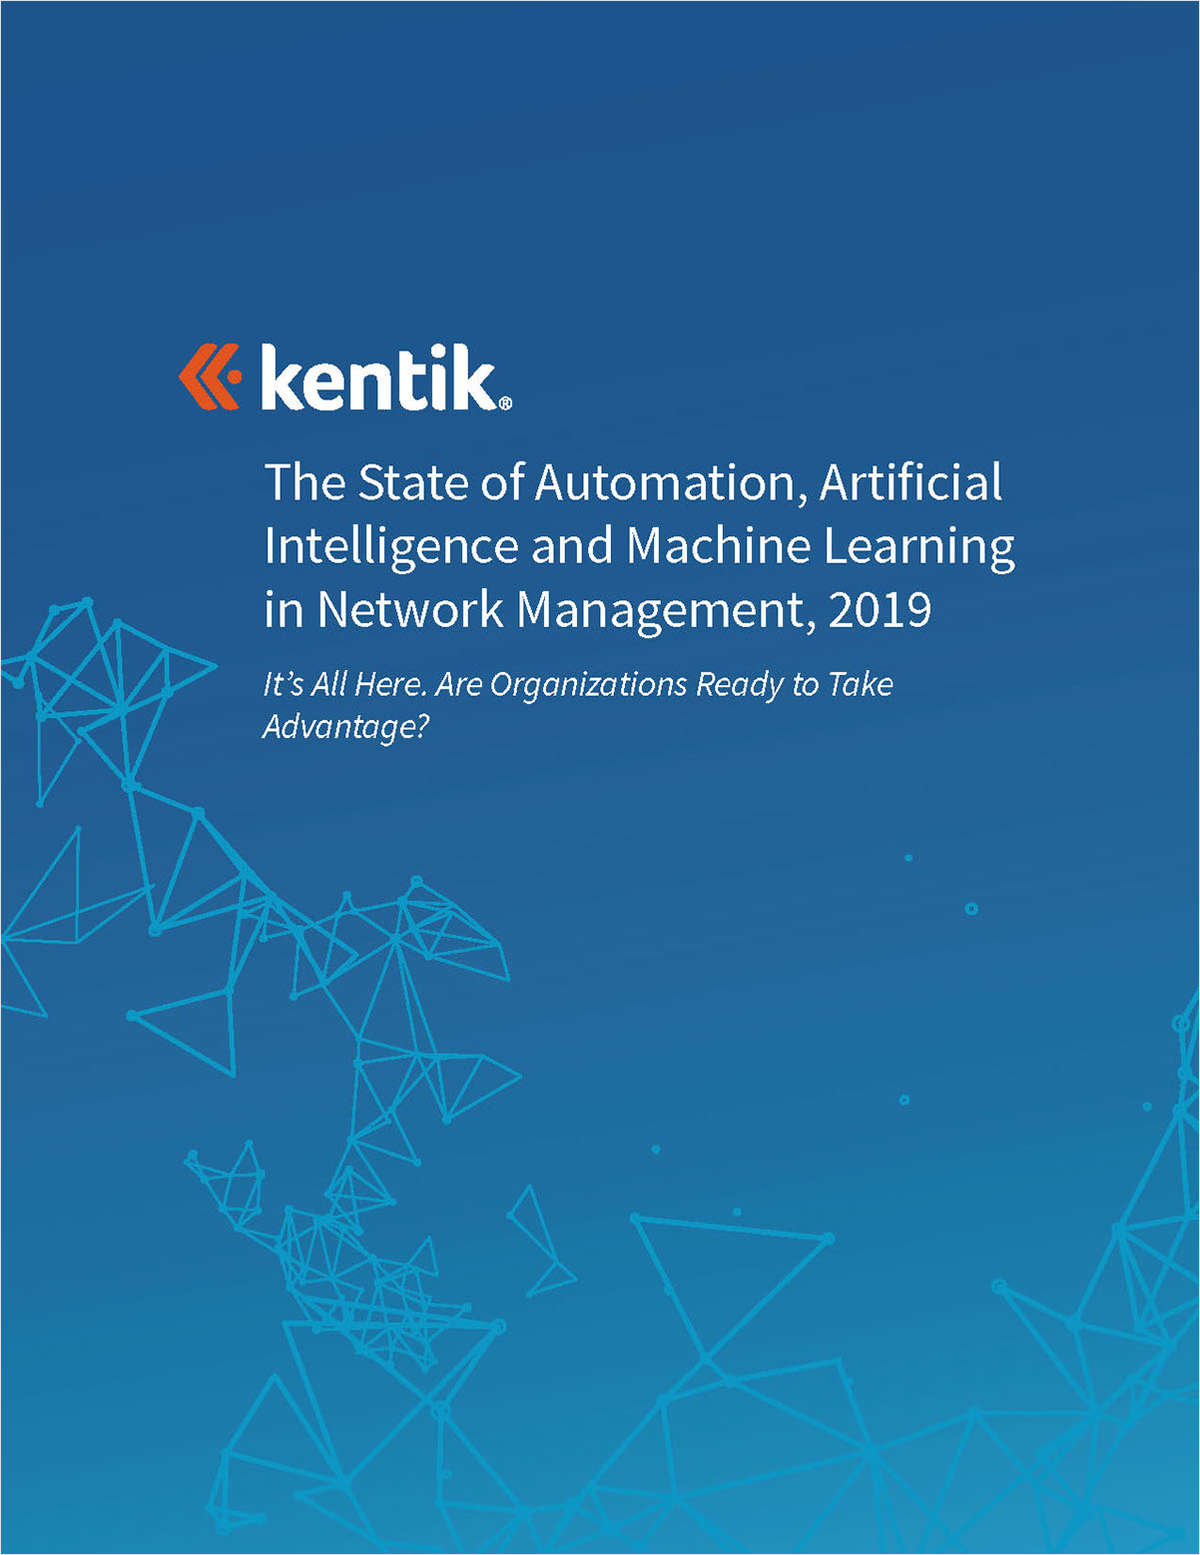 The State of Automation, Artificial Intelligence and Machine Learning in Network Management